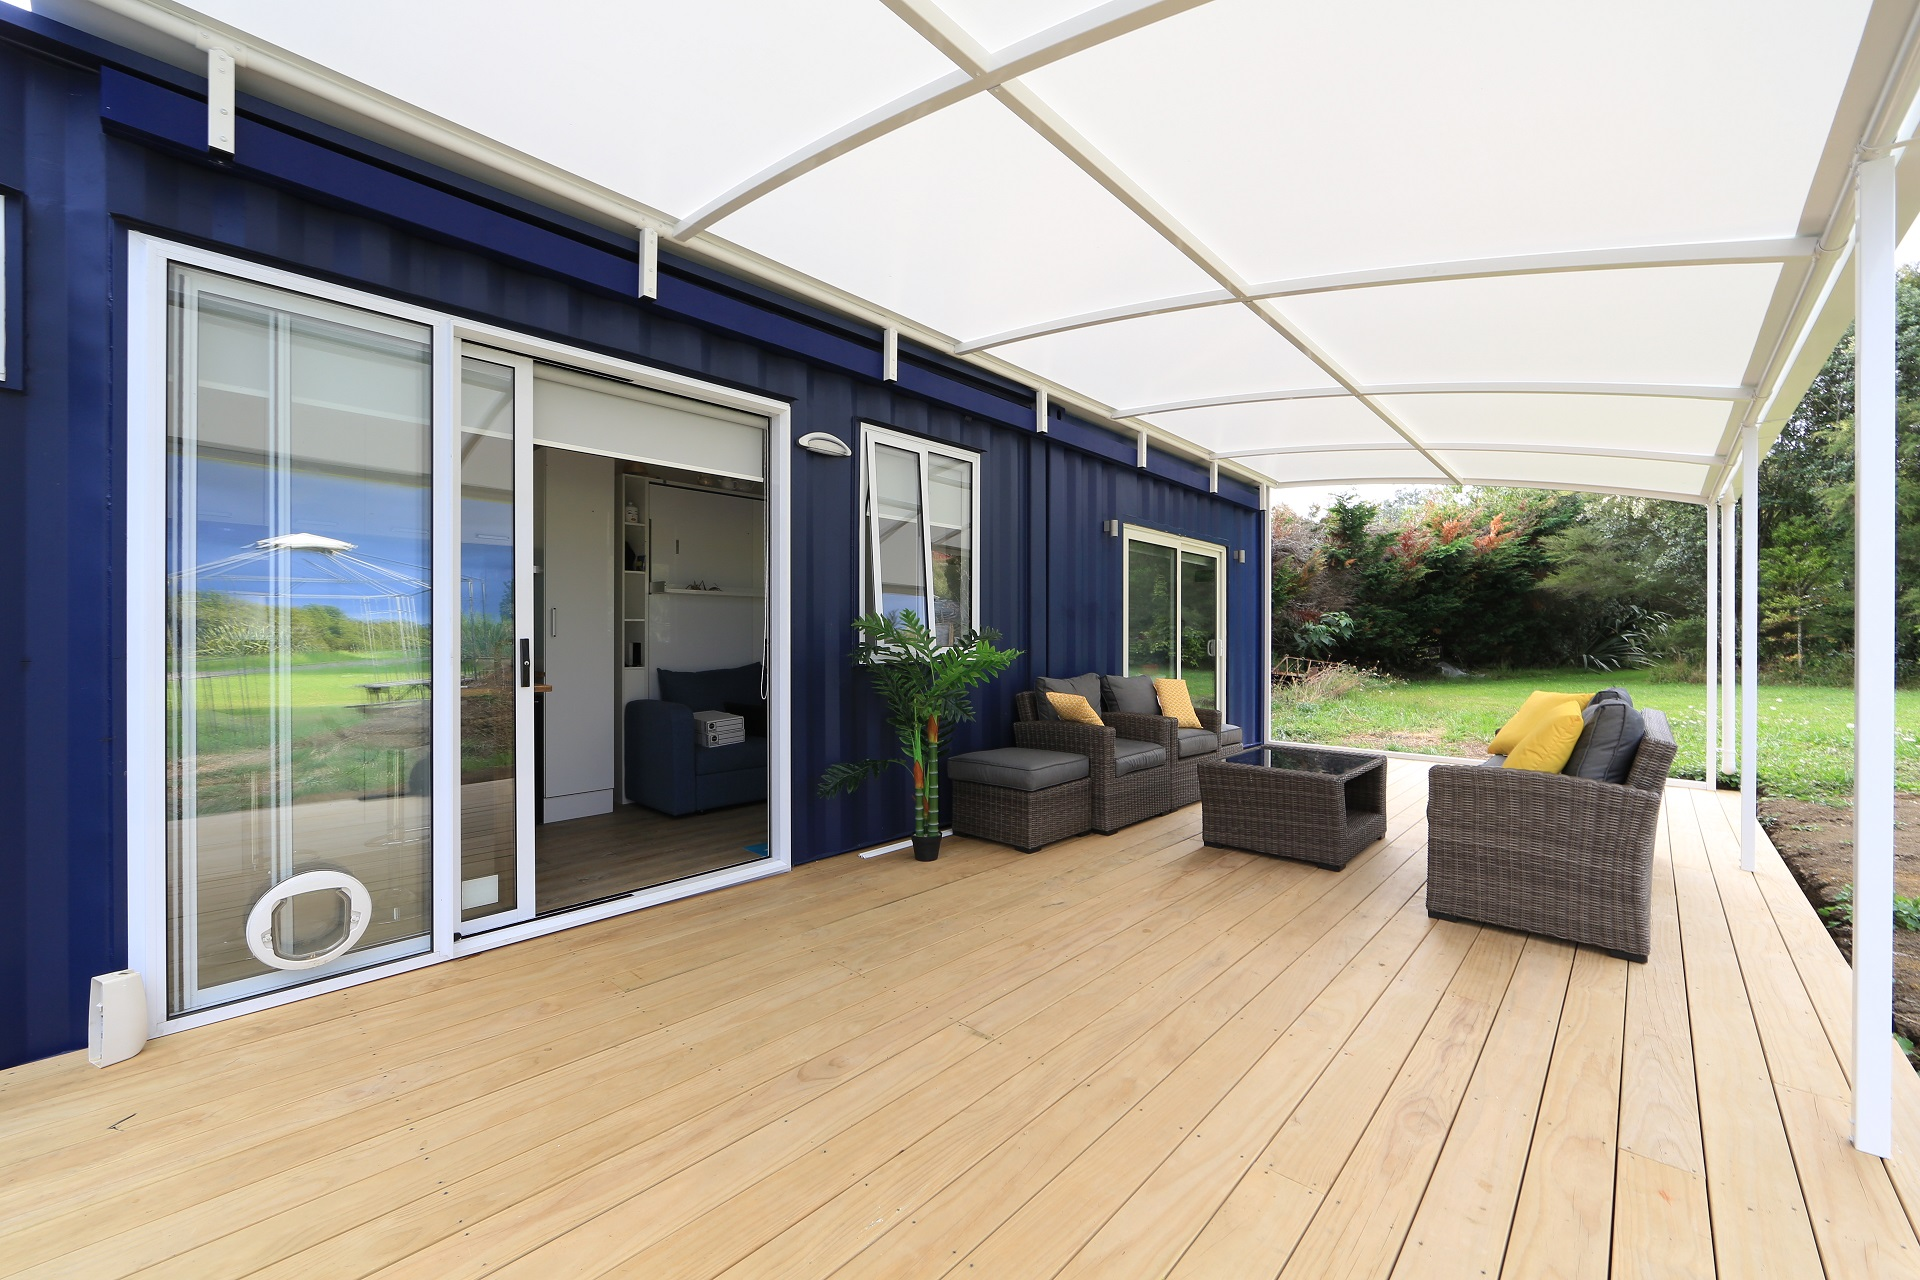 Gallery Iq Container Homes